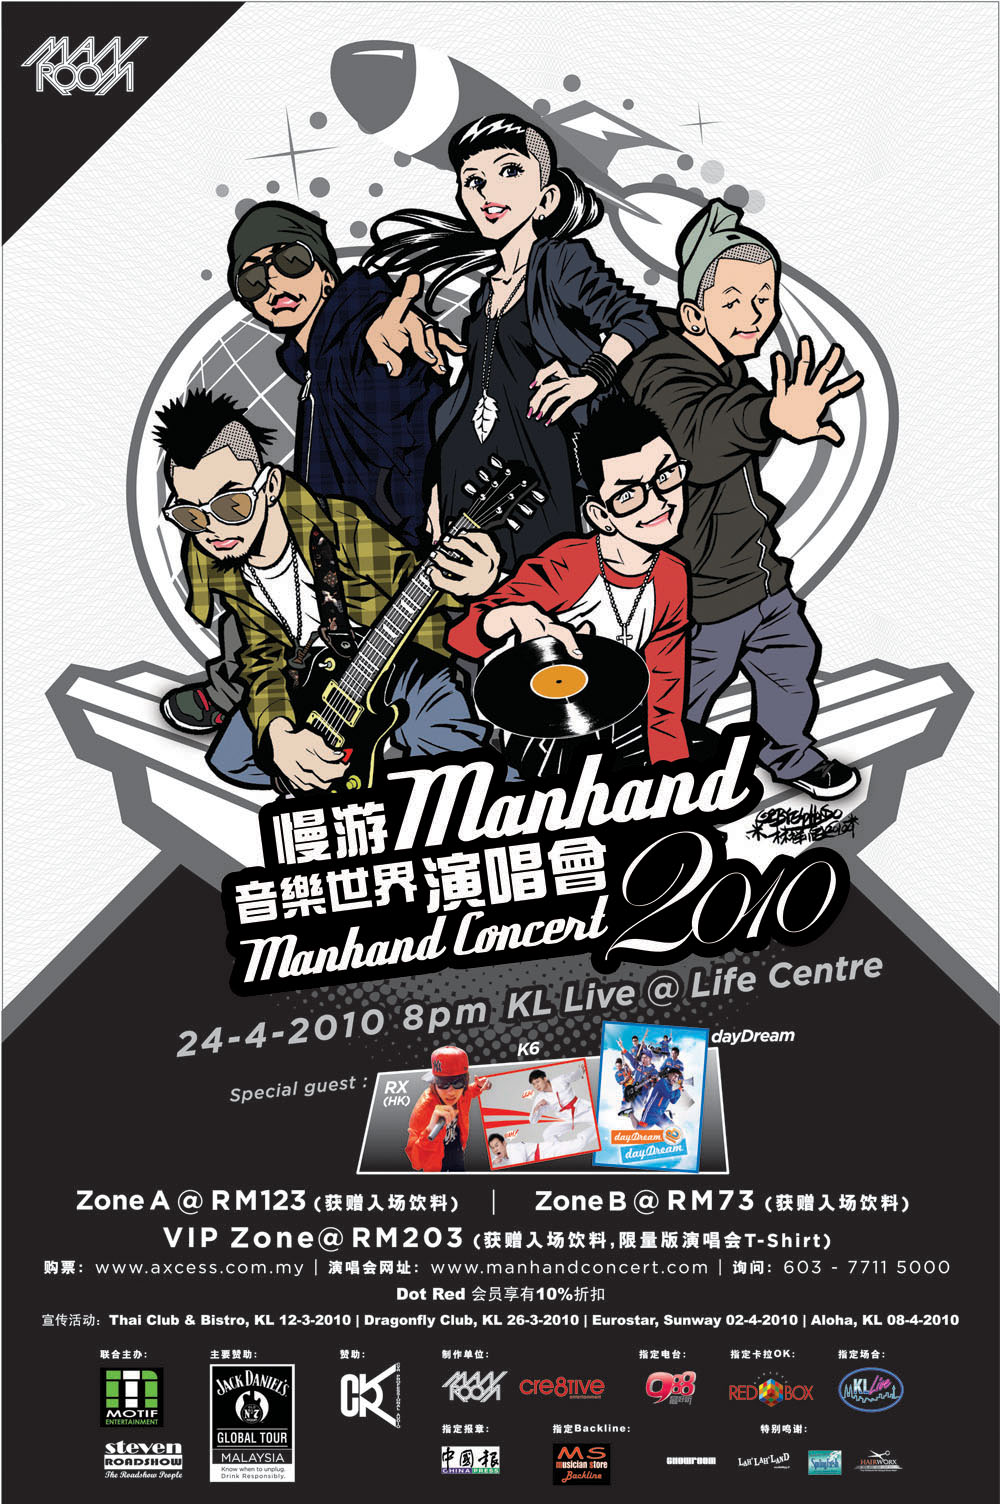 ManHanD Concert 2010 - KL(low res).jpg